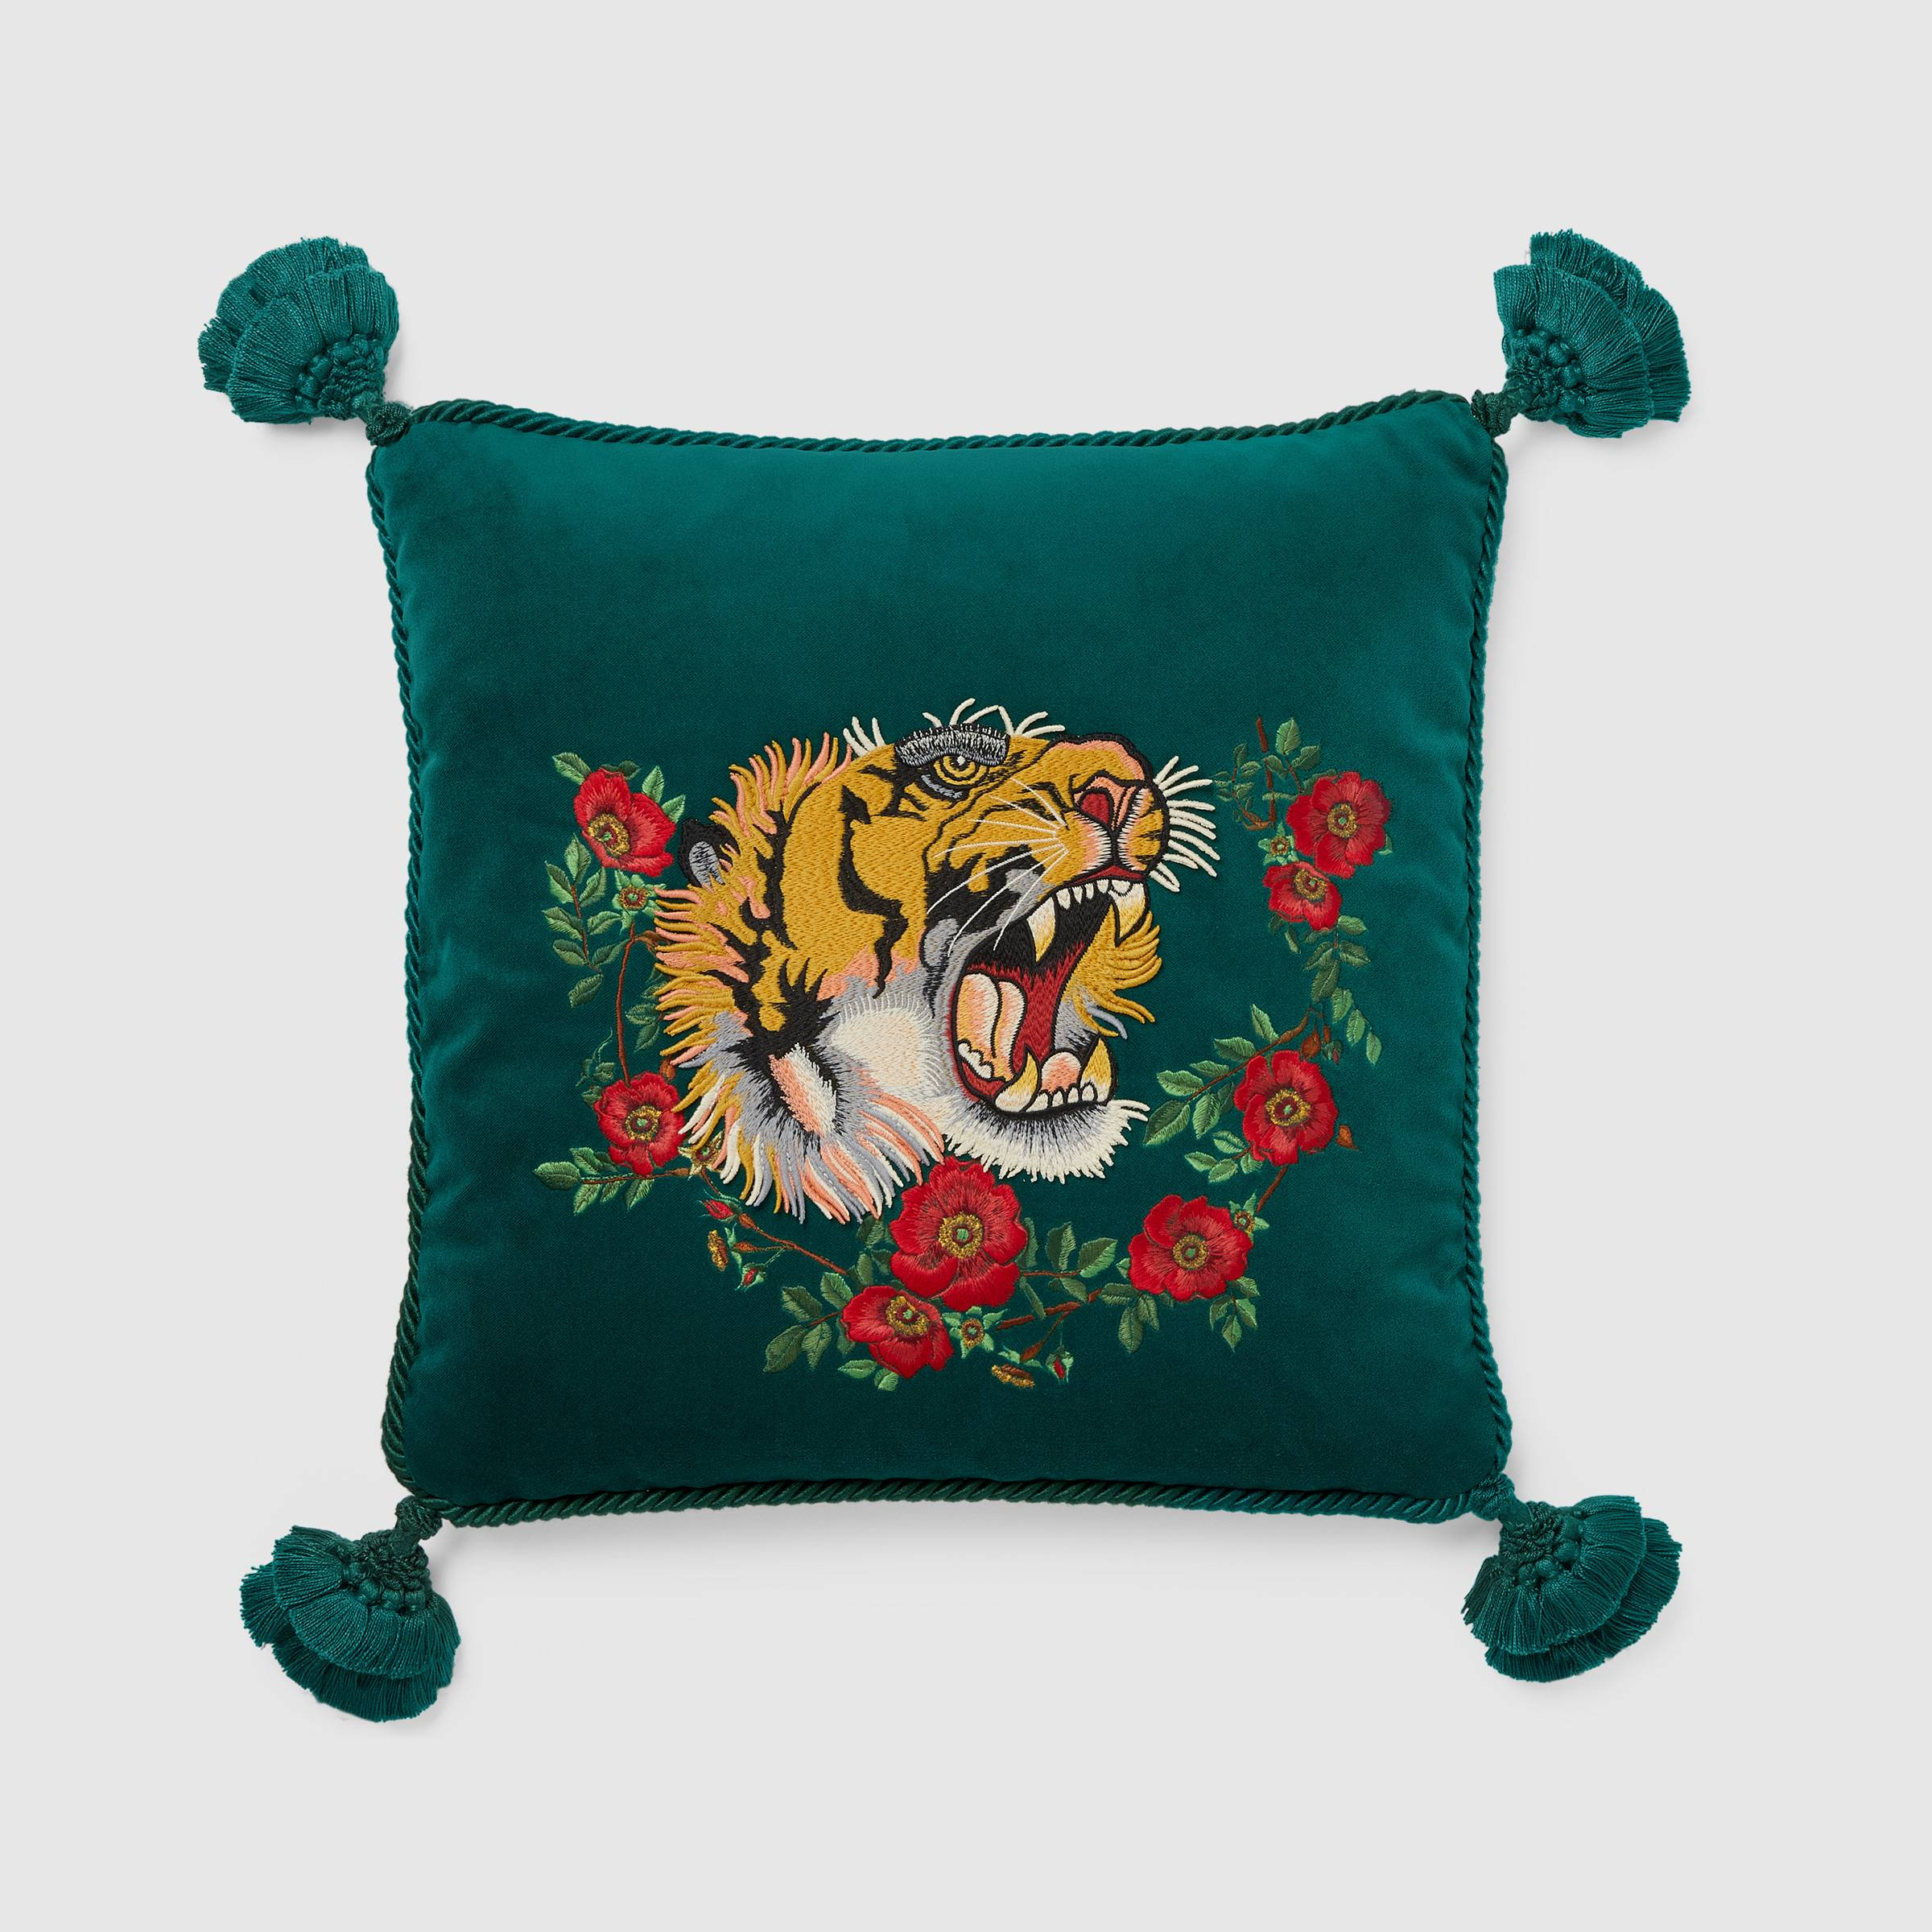 Velvet cushion with tiger embroidery from Gucci Decor